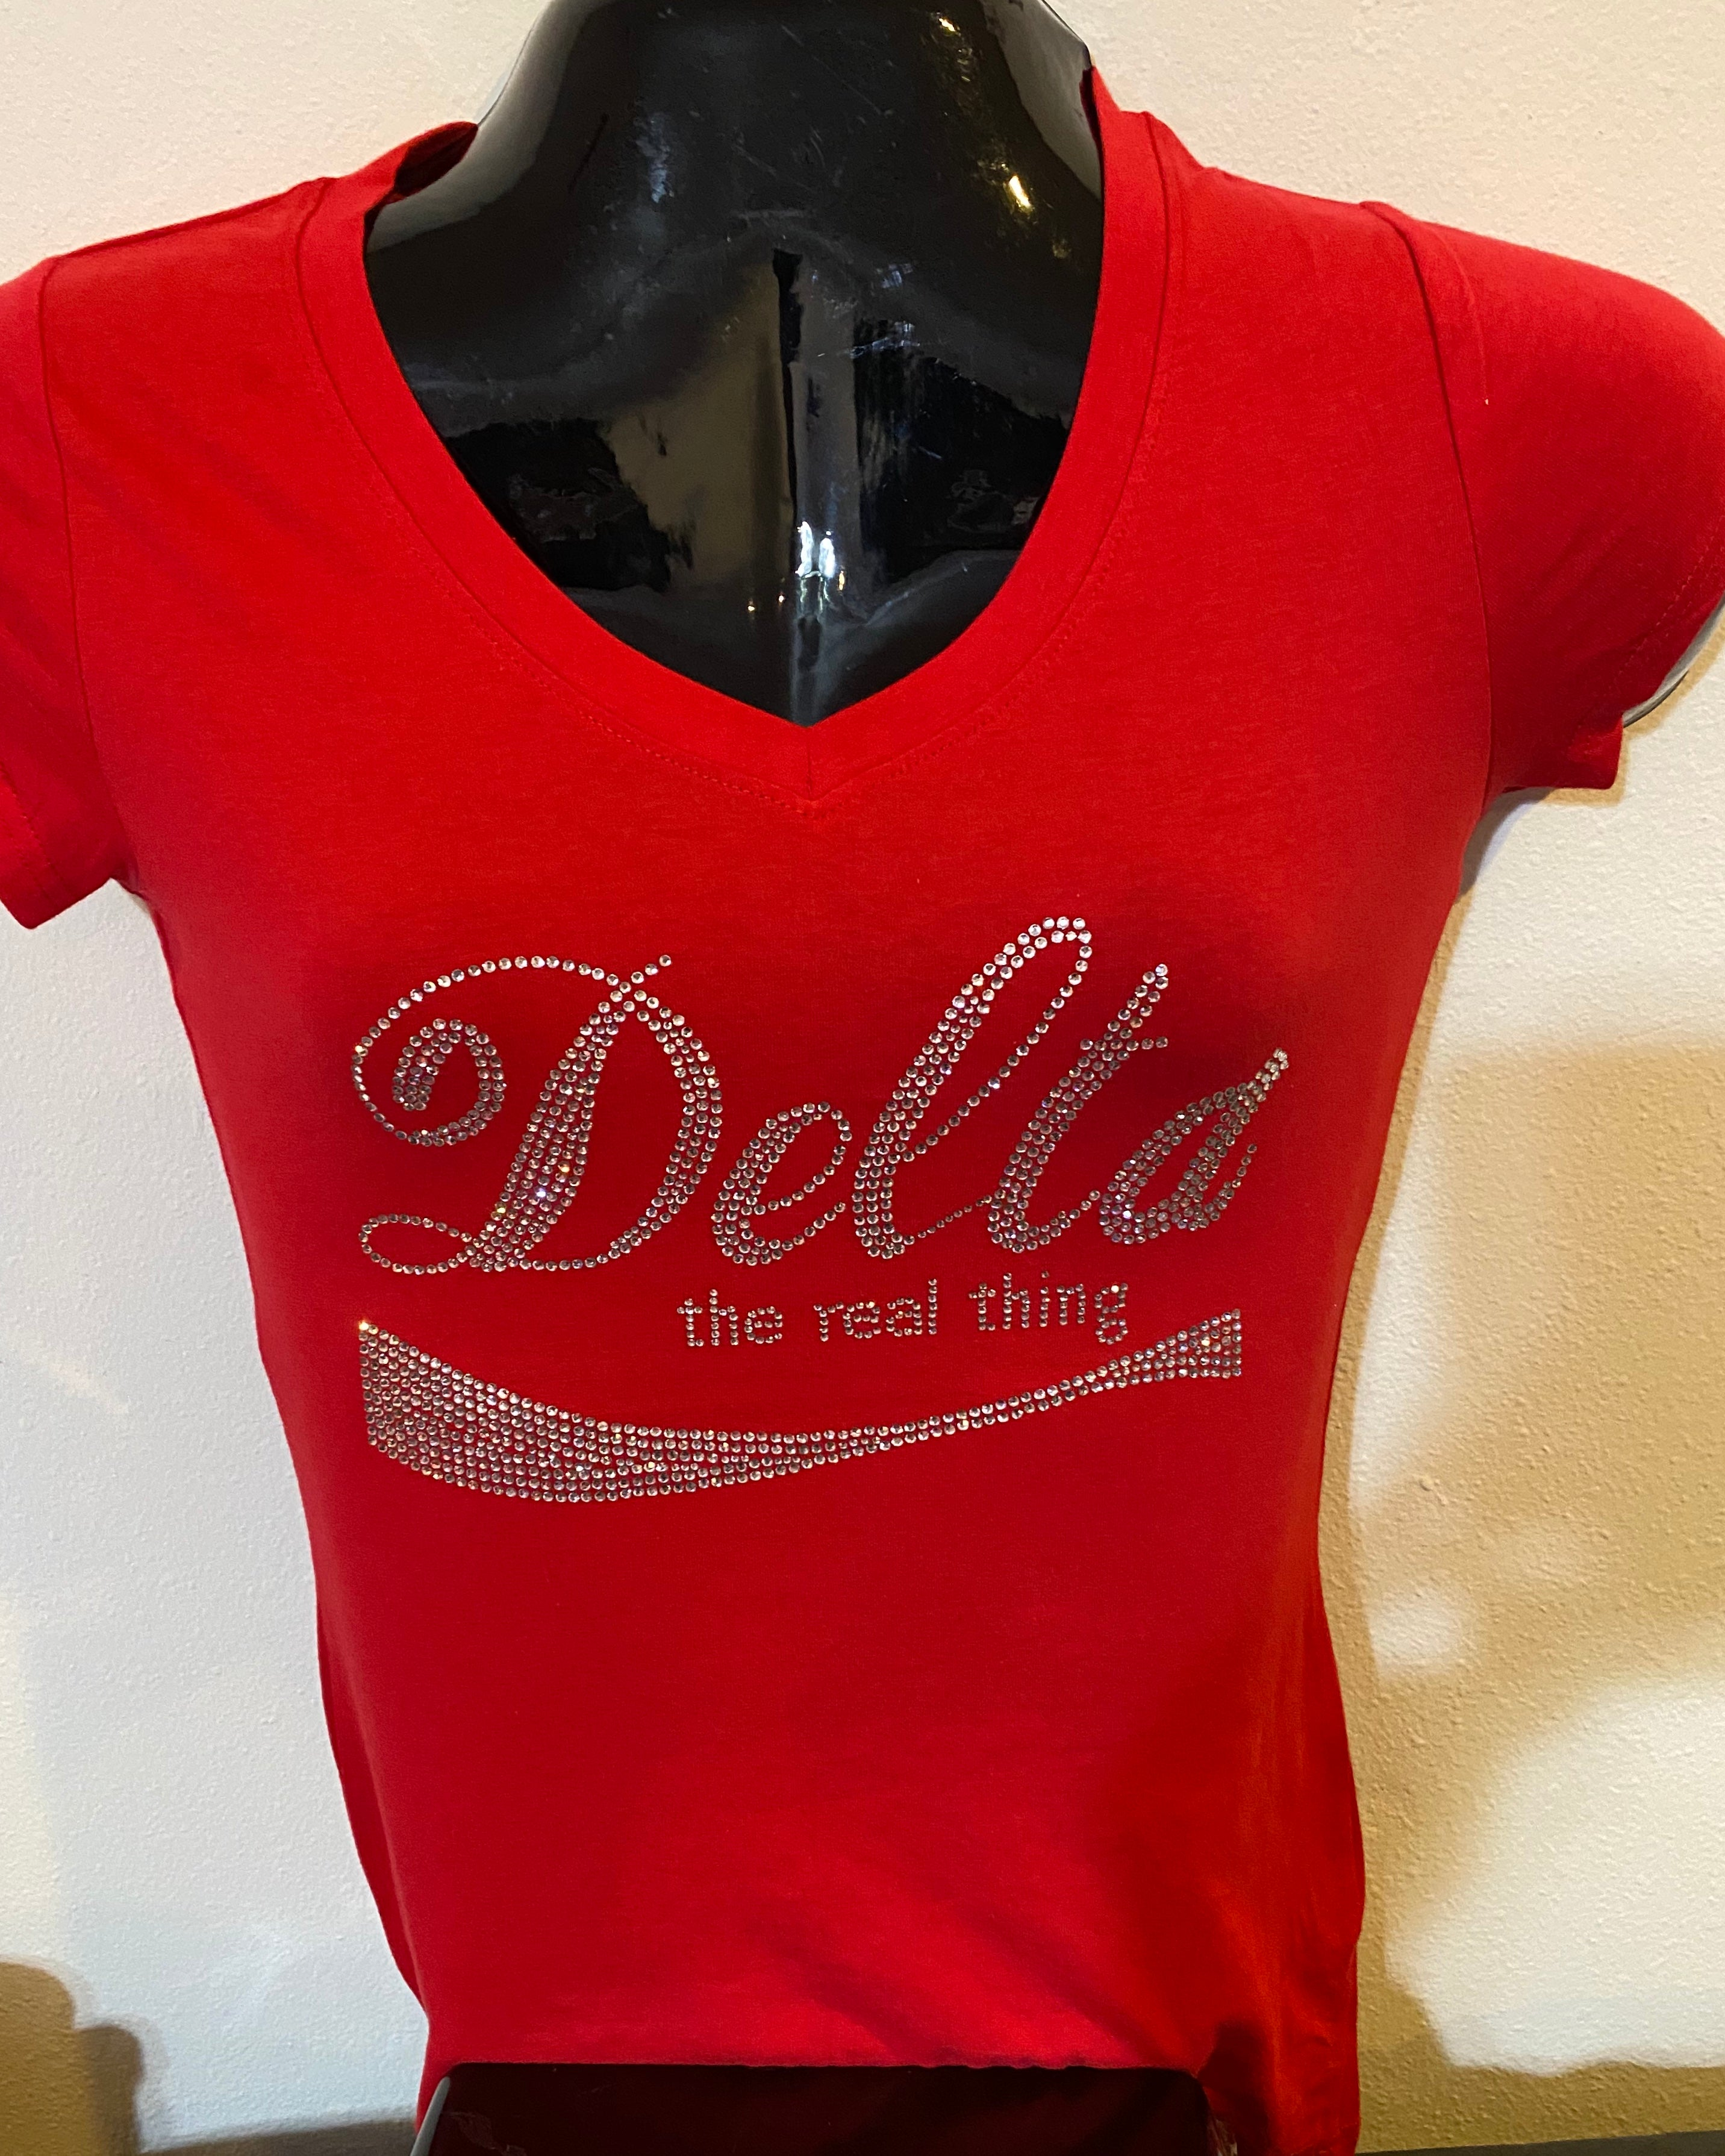 A Delta the real thing V-neck shirt